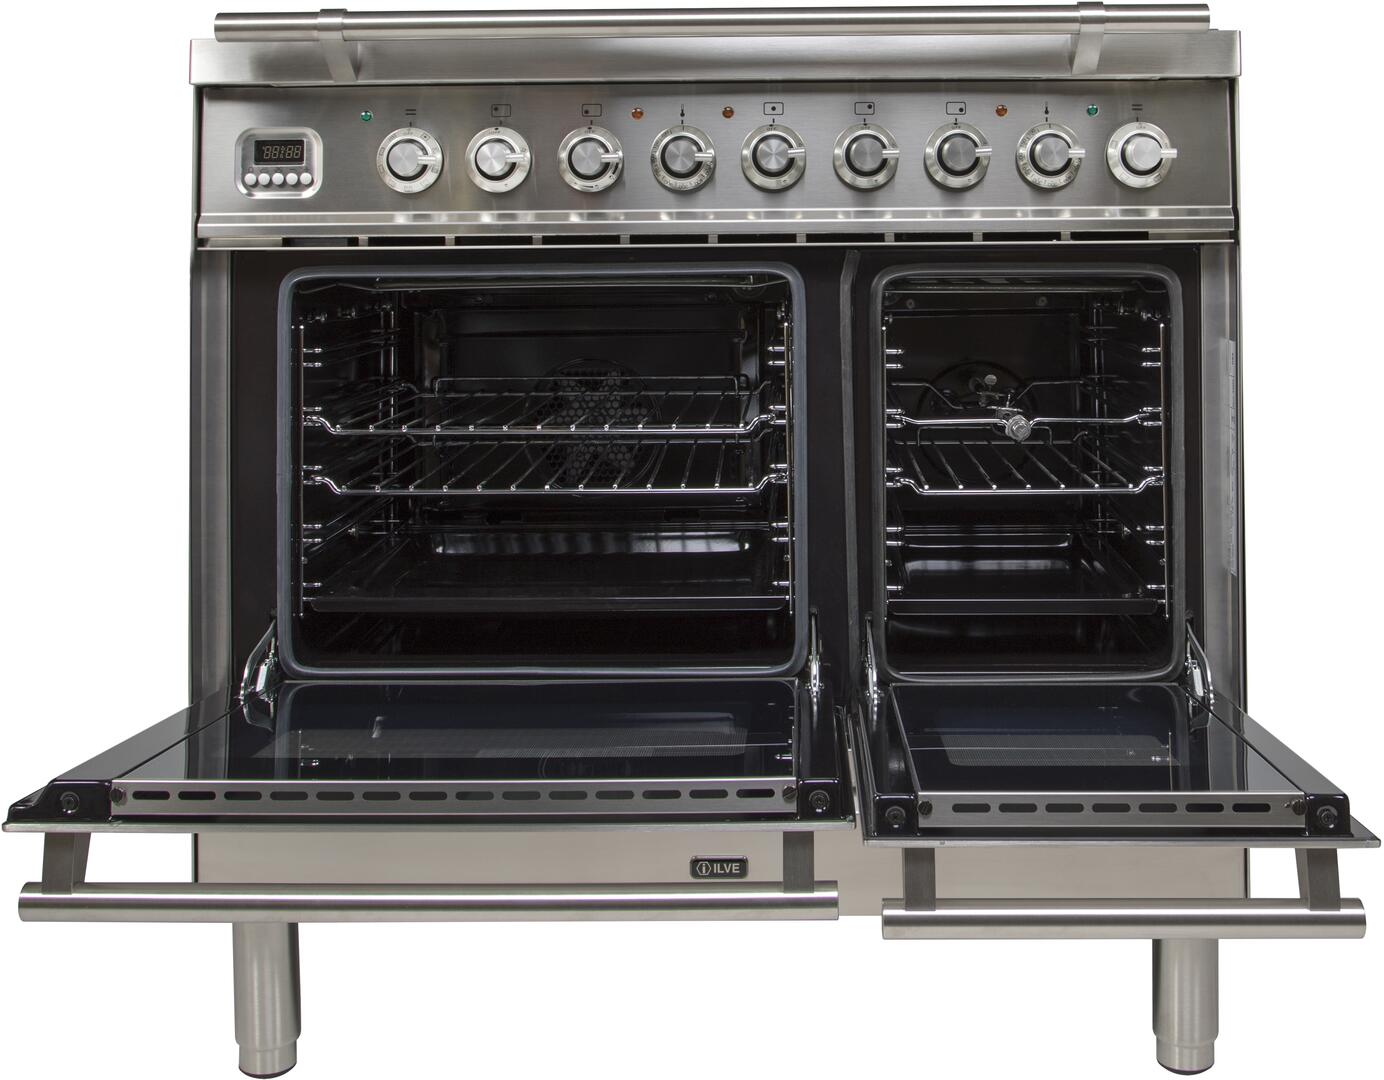 Ilve Professional Plus UPDW90FDMPILP Freestanding Dual Fuel Range Stainless Steel, UPW90FDMPI Oven Doors Opened